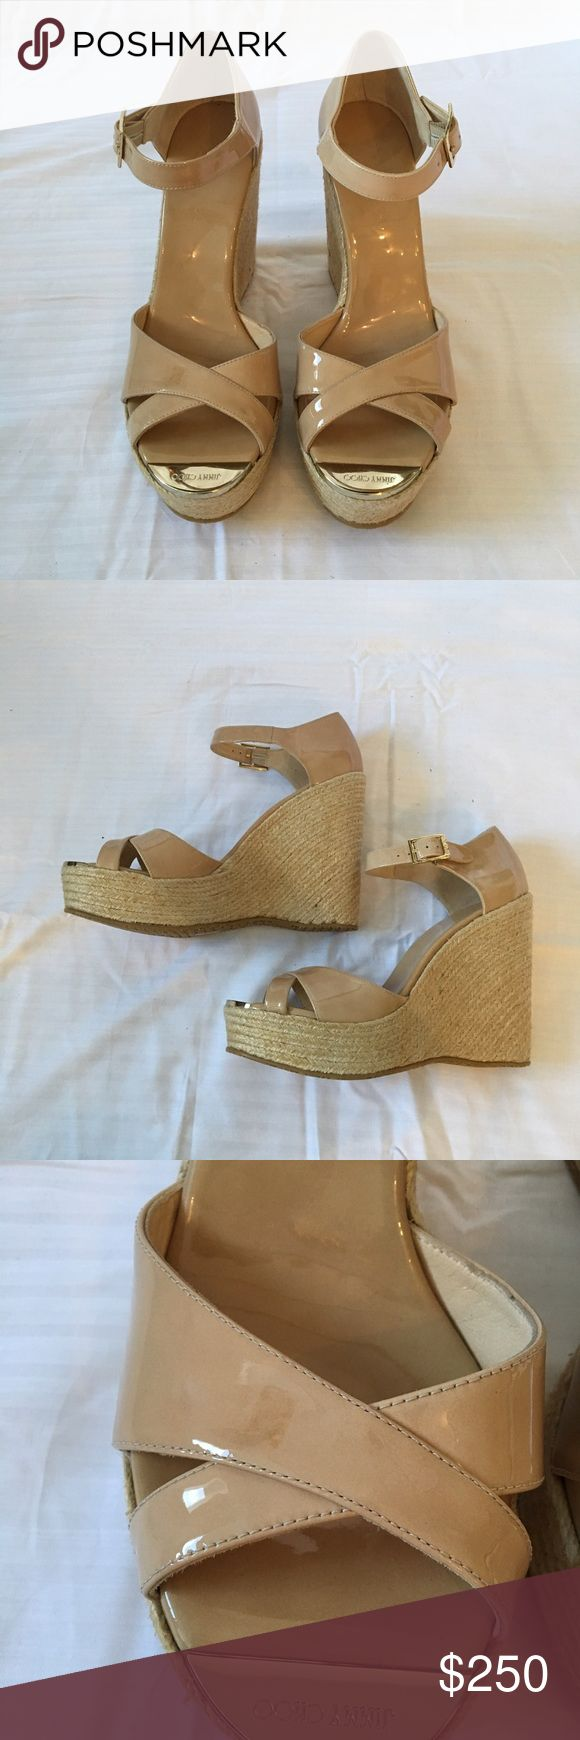 $150 P NEW Jimmy Choo Pallis Nude Espadrilles 42 PRICE IS THRU 🅿️ ONLY. Brand new Jimmy Choo Pallis Nude patent Espadrilles sandals. Size 42. Sizing may vary by shoe. Buckles are imperfect, see pics. Jimmy Choo Shoes Espadrilles